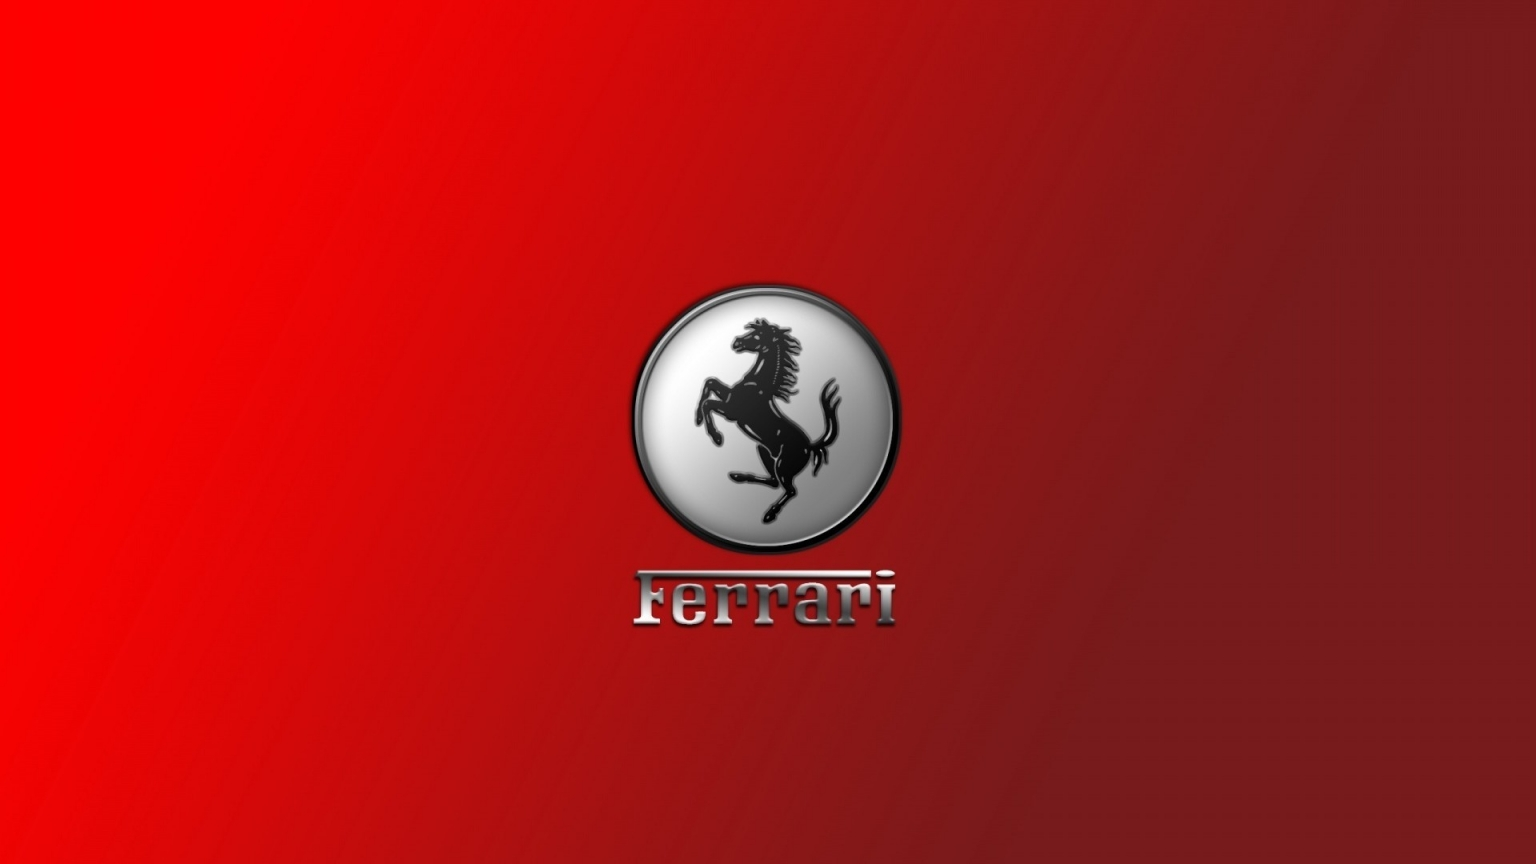 Gorgeous Ferrari Logo for 1536 x 864 HDTV resolution